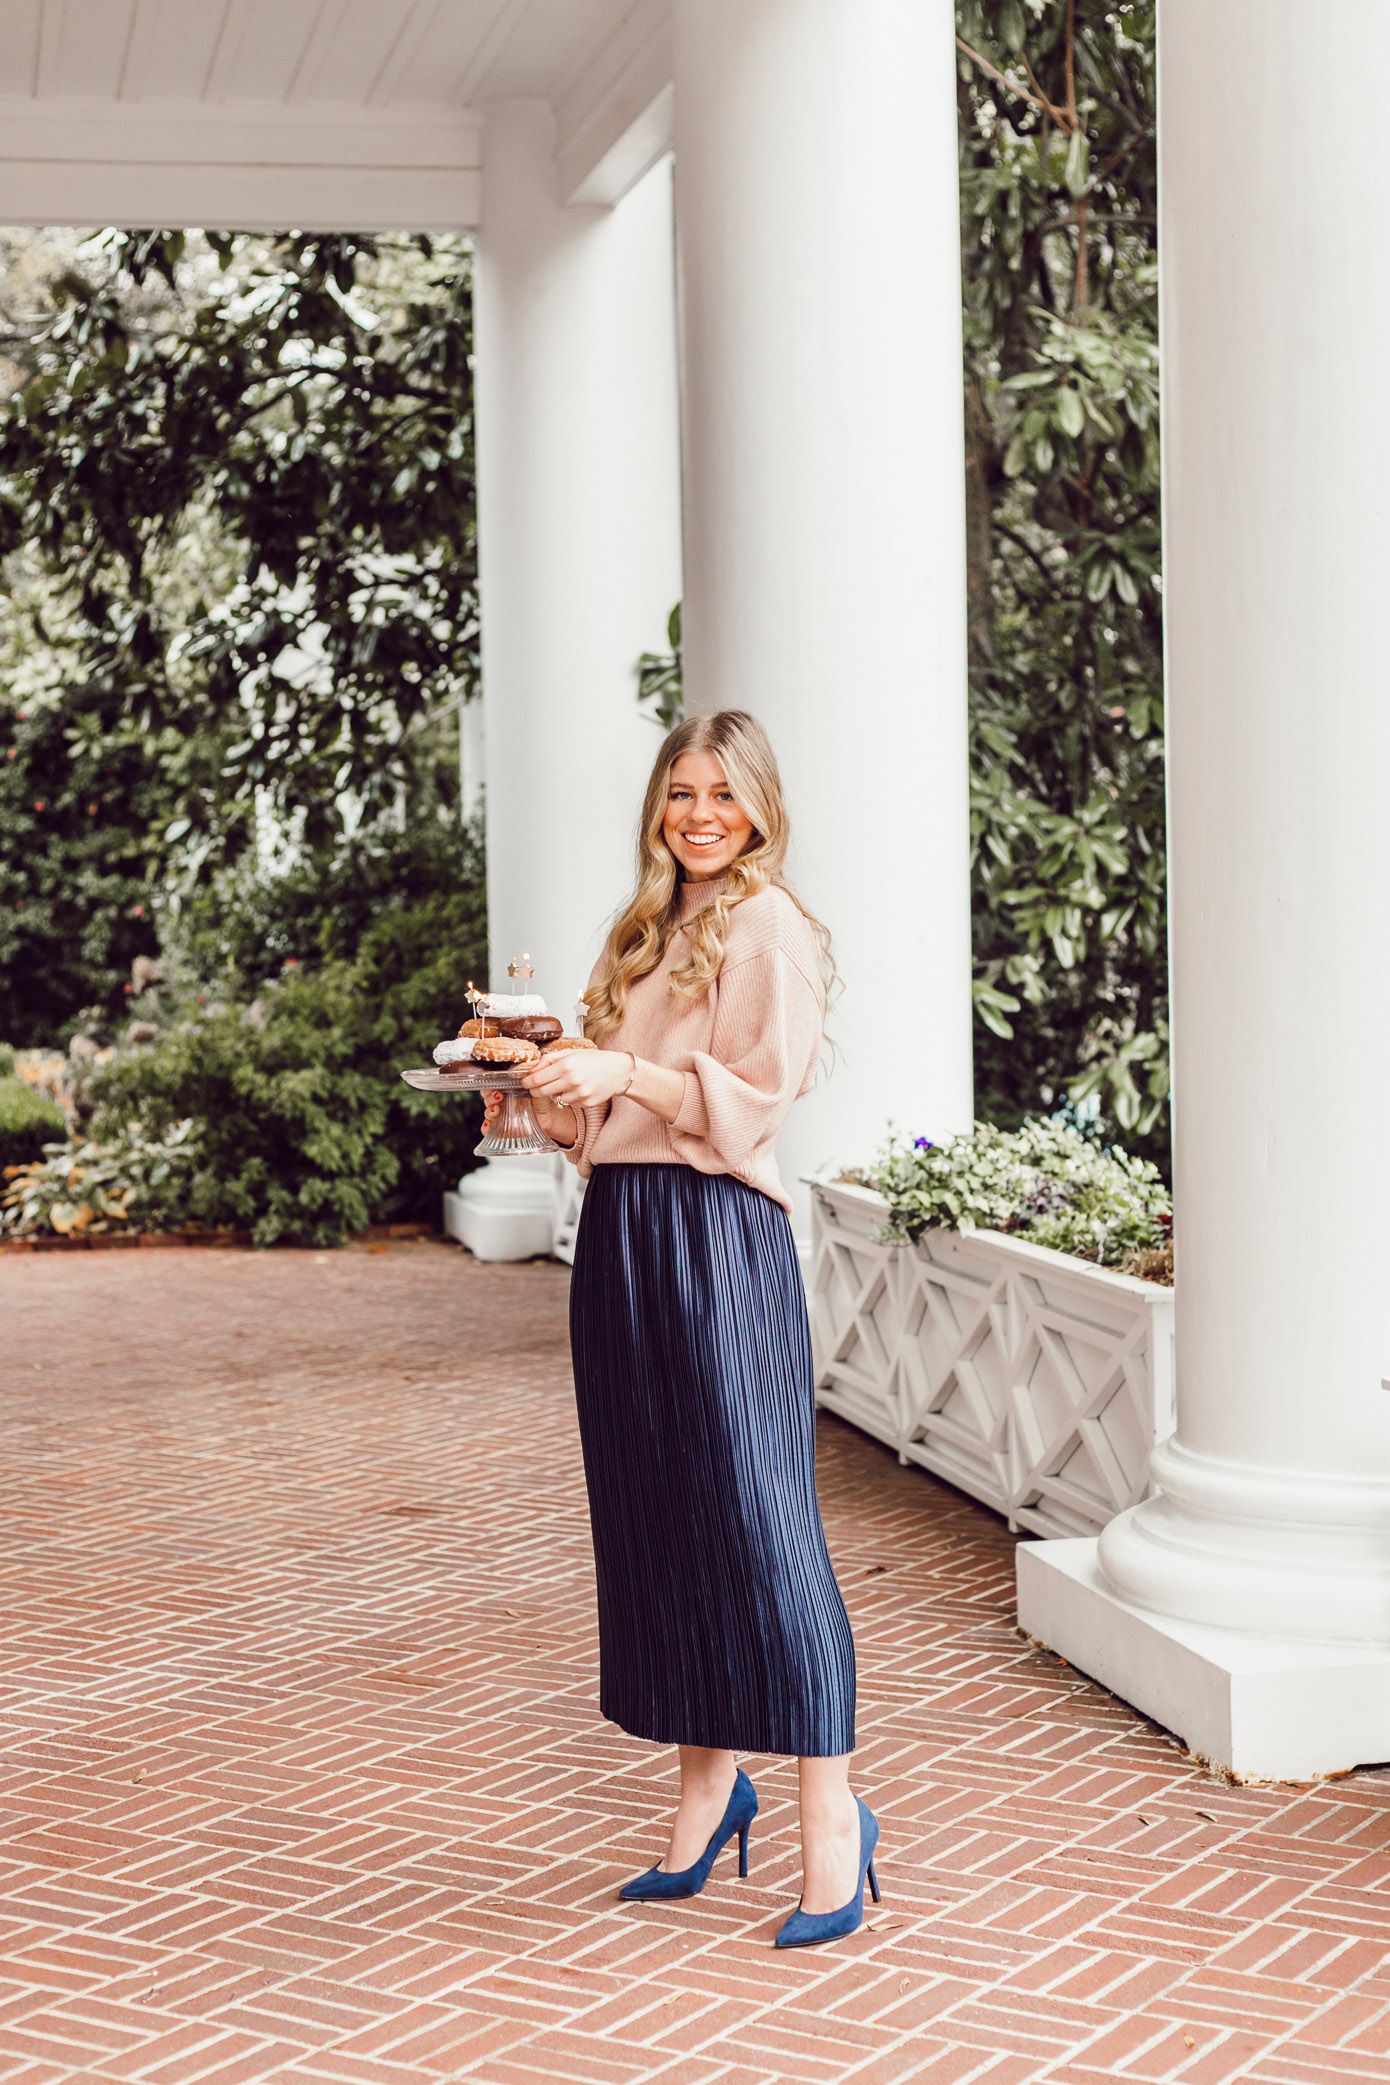 29 Life Lessons Learned featured on Louella Reese Blog for her 29th Birthday   Tibi Plissé Midi Skirt, Line and Dot Blush Cropped Sweater